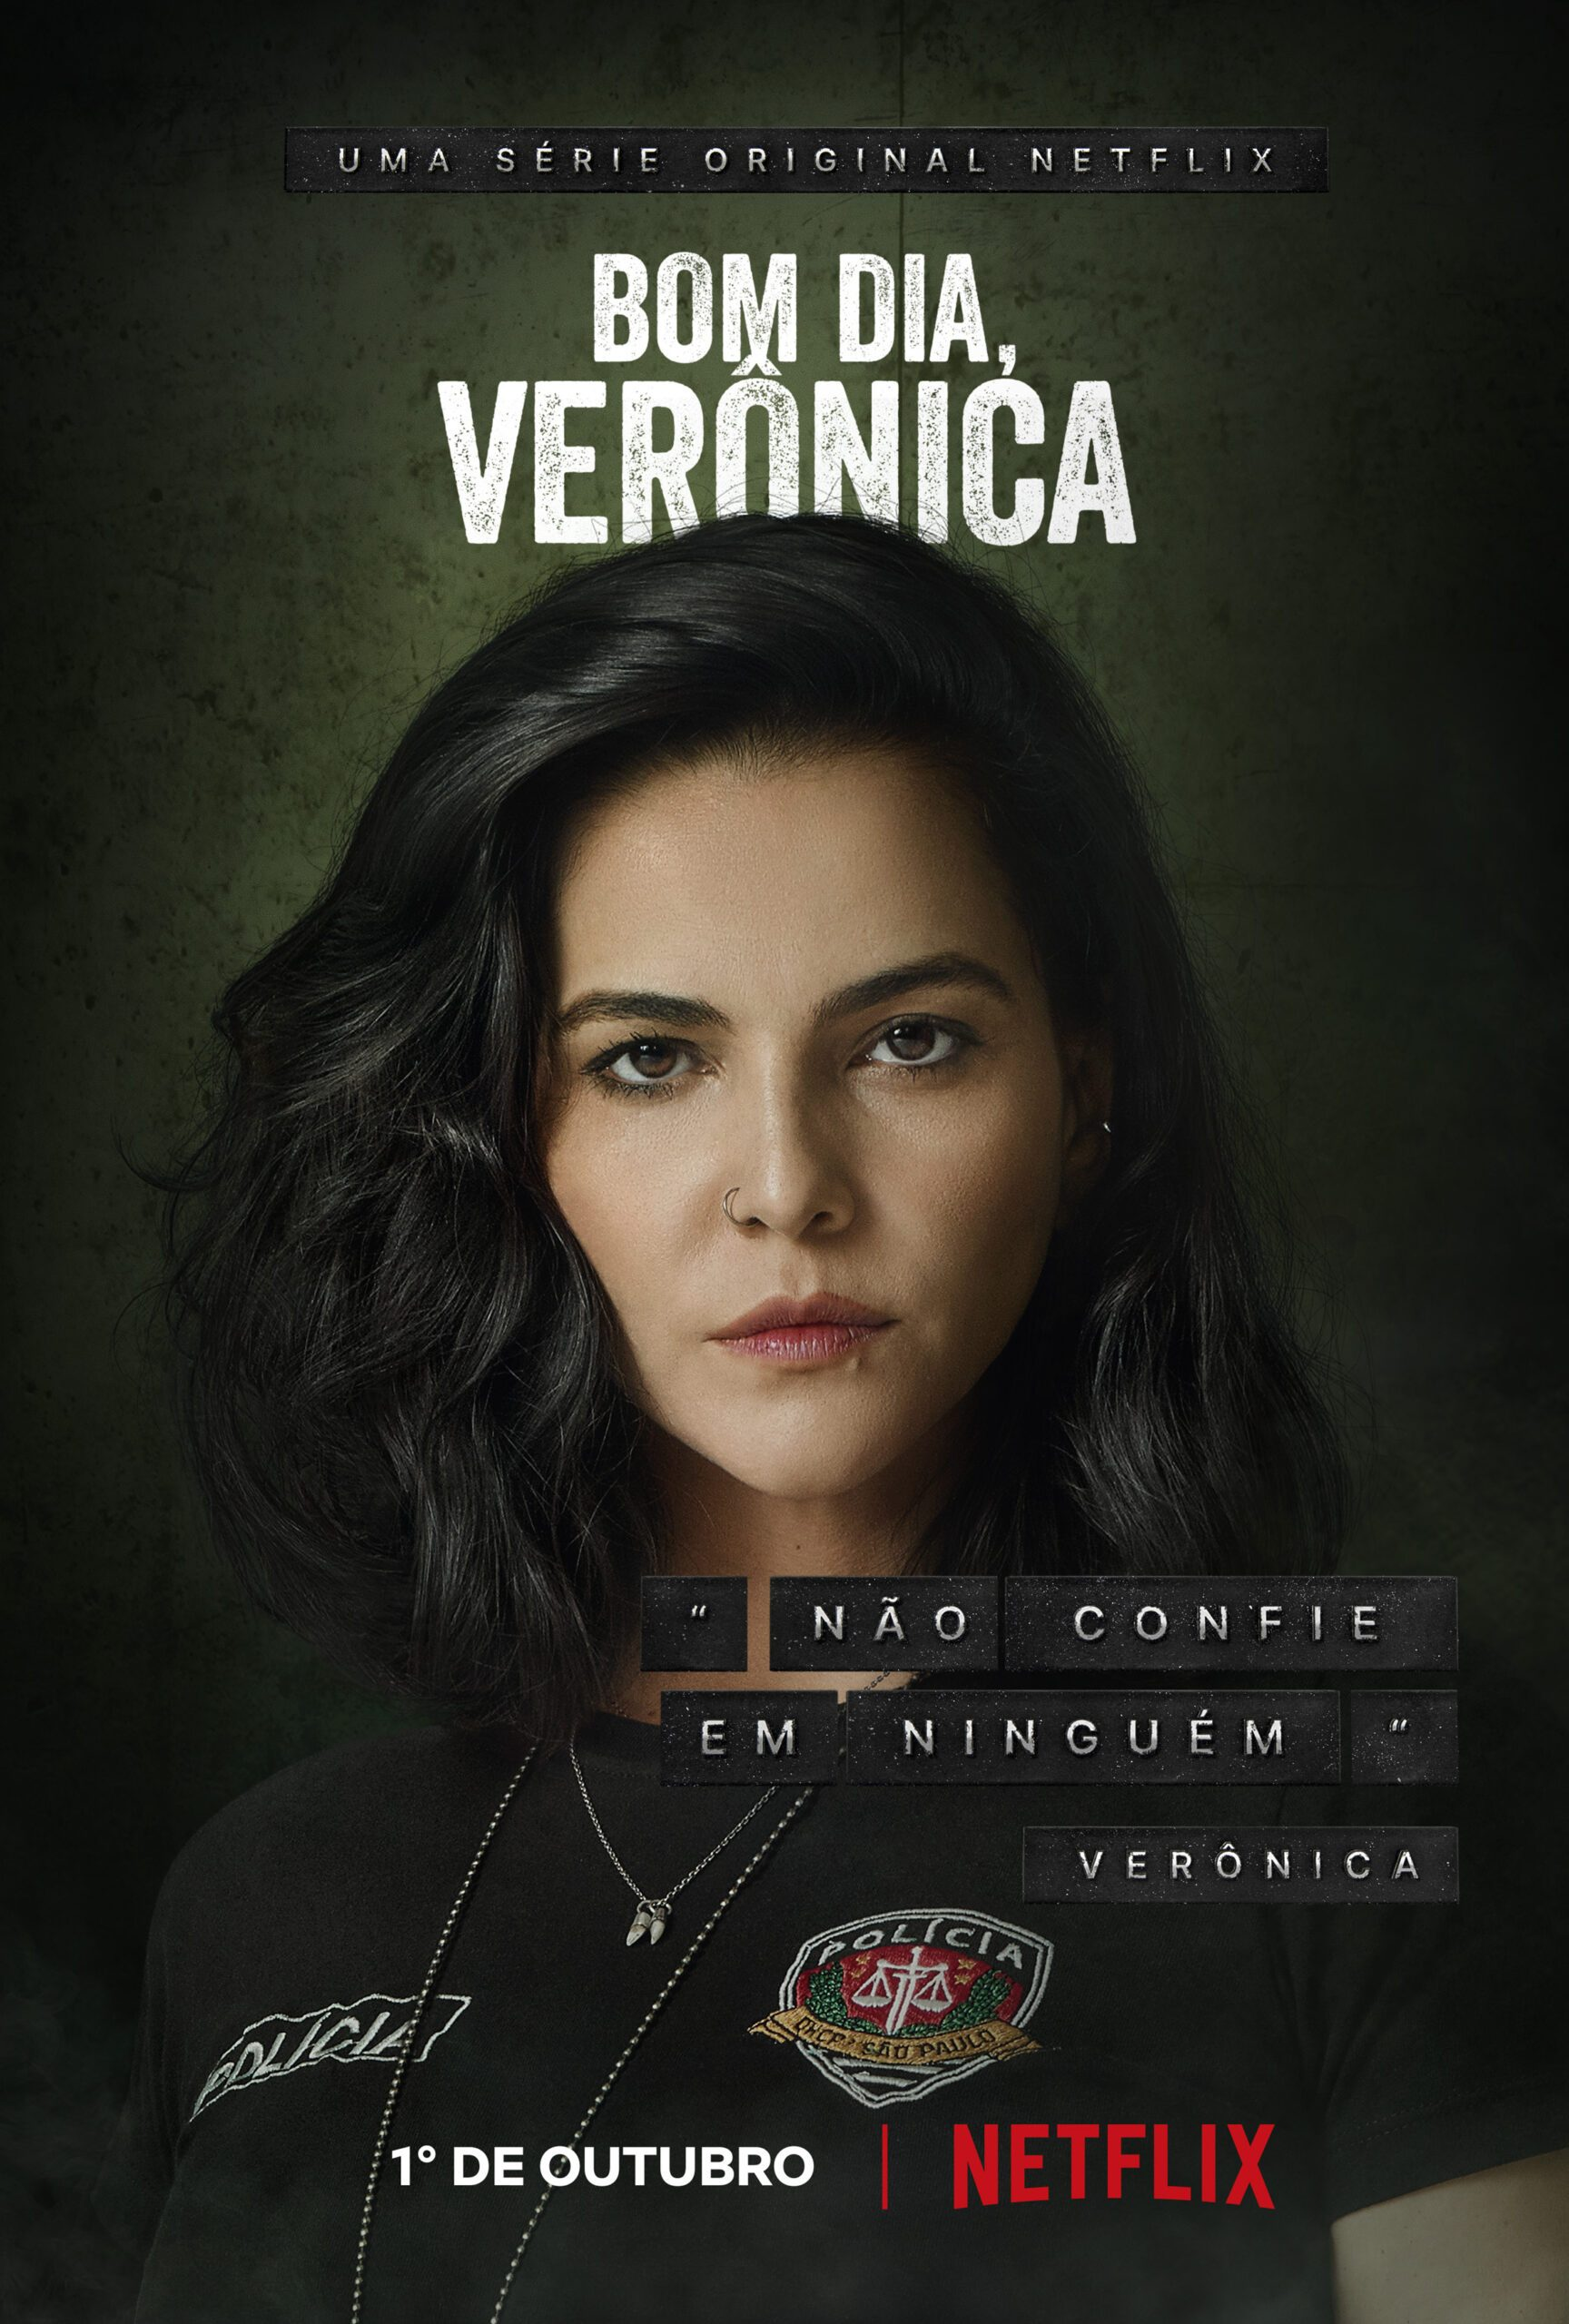 bom-dia-veronica-posters-3-scaled